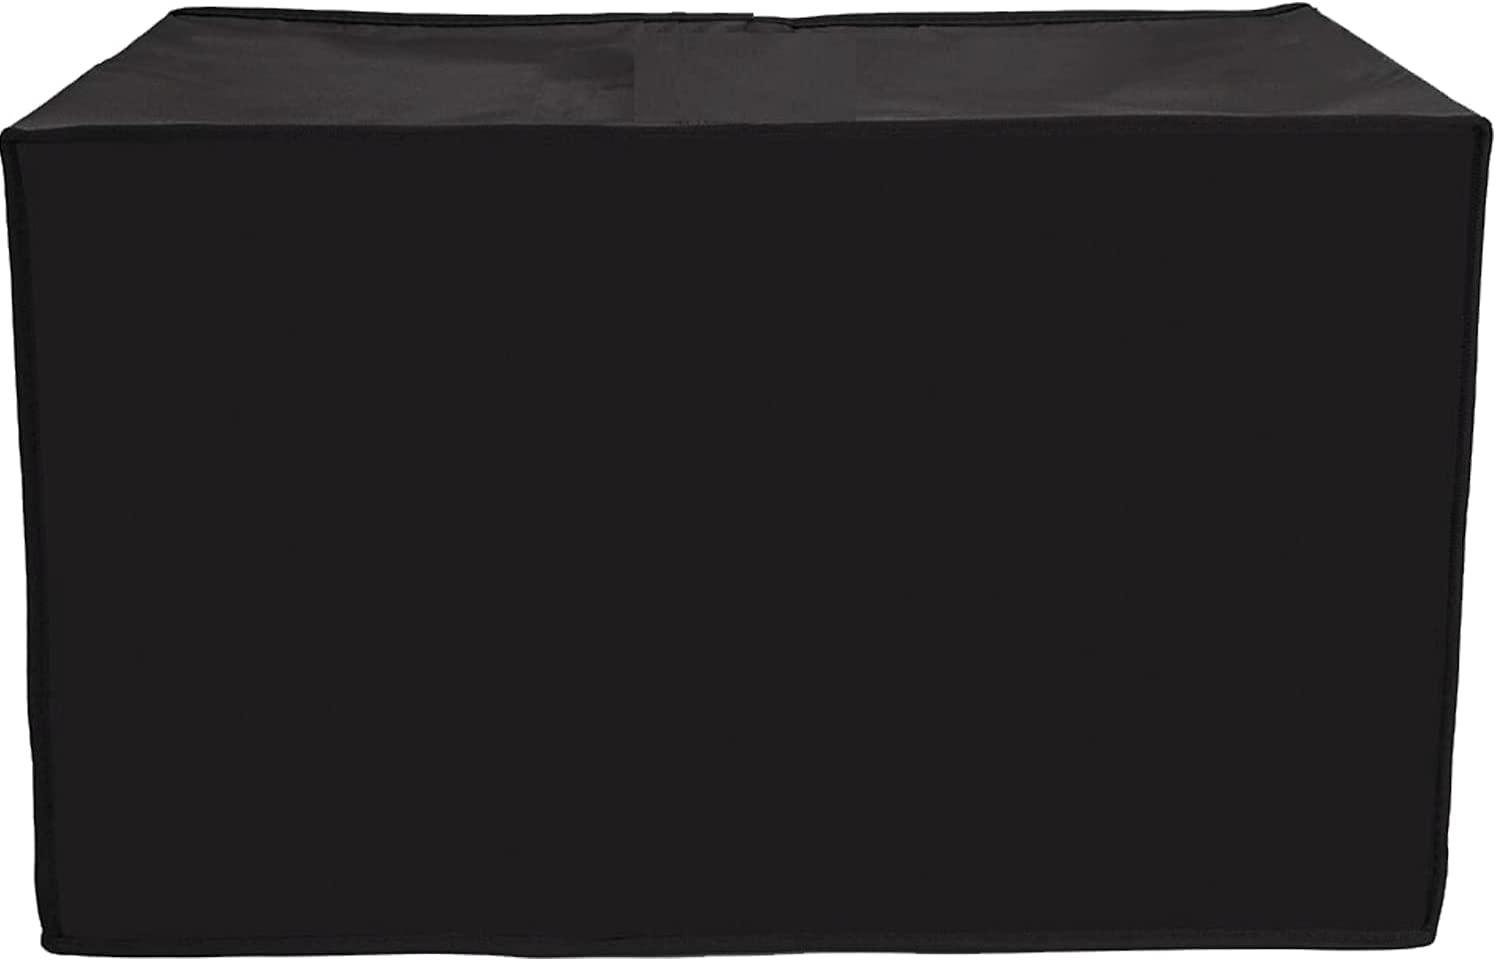 2 Slice Toaster Cover - Kitchen Small Appliance Cover, Dust and Fingerprint Protection, Machine Washable, Black